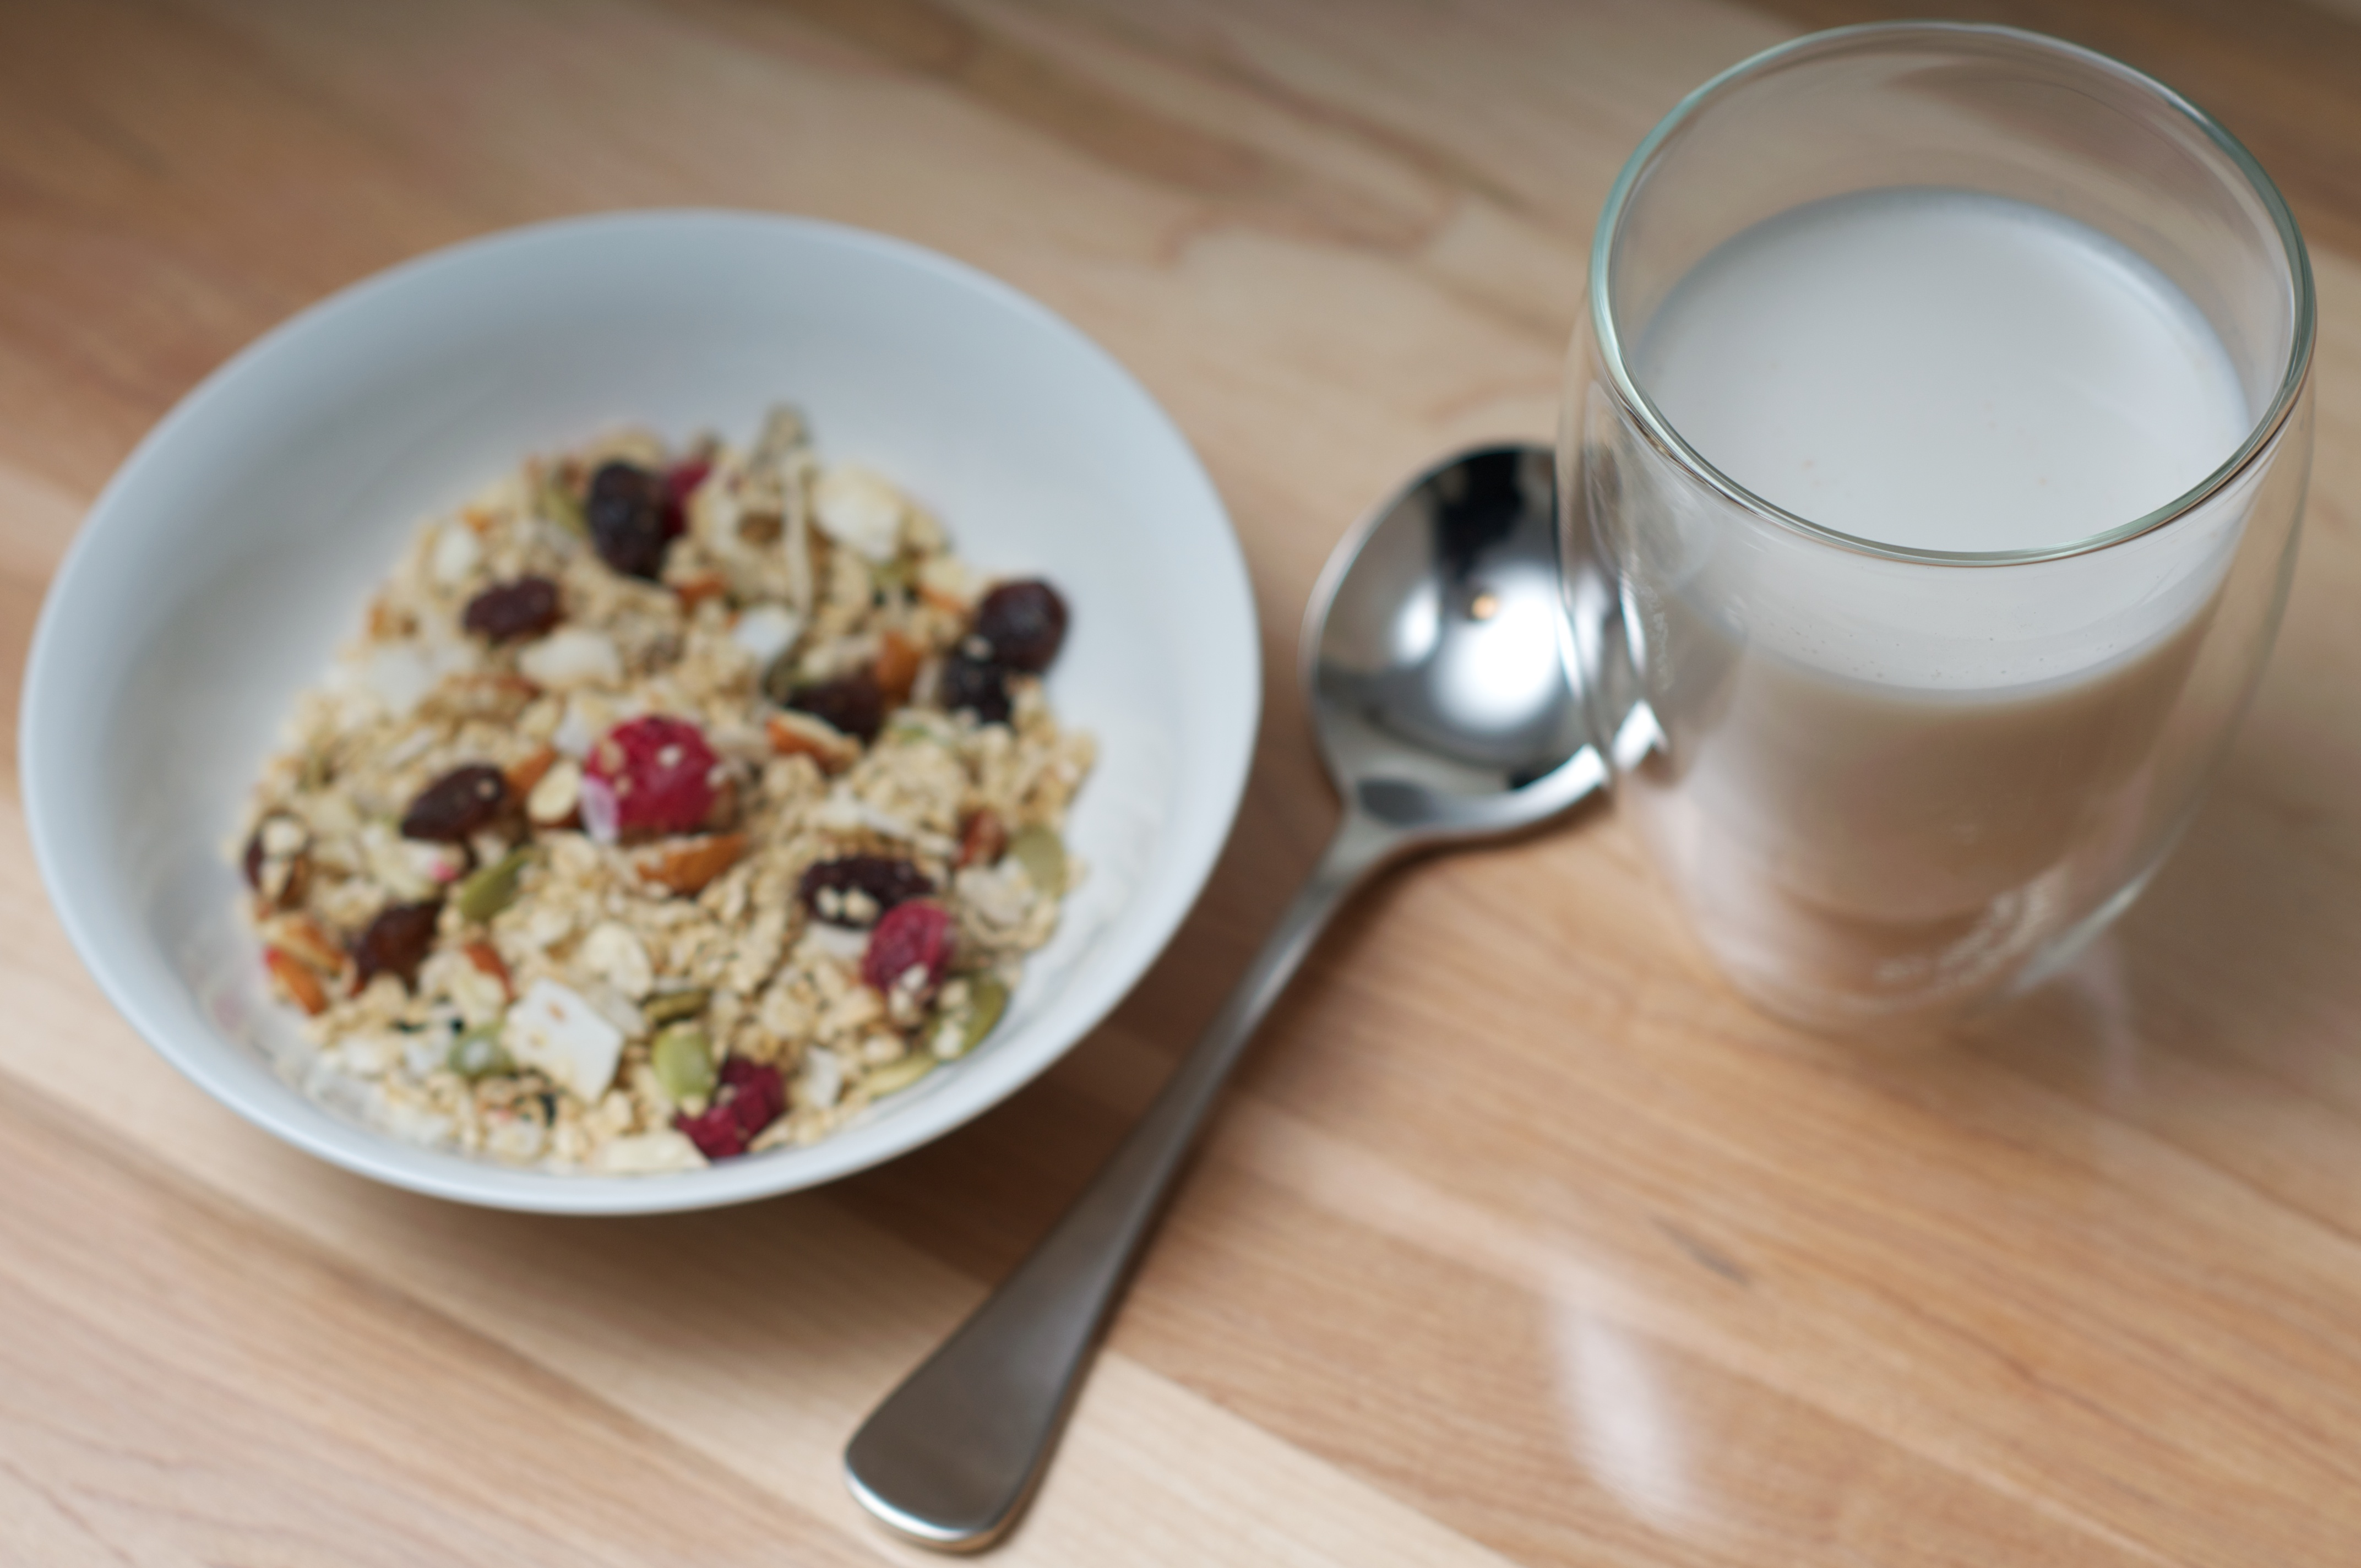 Homemade granola goodness marni wasserman get inspired to eat wouldnt it be nice to sit down to a bowl of delicious granola in the morning knowing you made it and that it tasted better than anything you bought in a solutioingenieria Choice Image